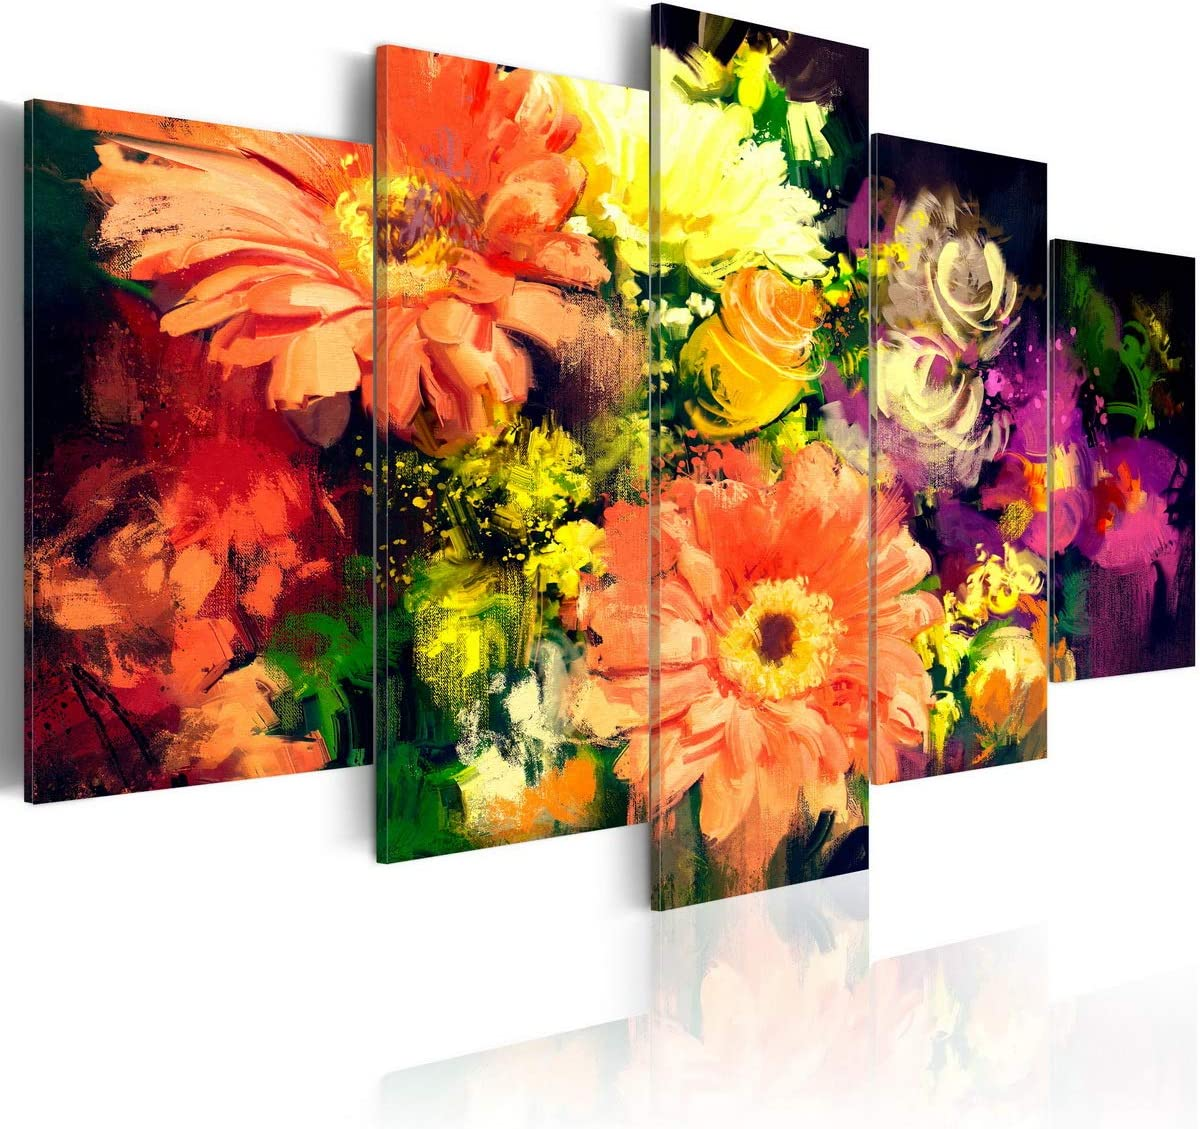 Colorful Flower Canvas Painting 5 Pieces Spring Collage Abstract Floral Wall Art Modern Print Artwork Picture Decor for Office Home Decoration